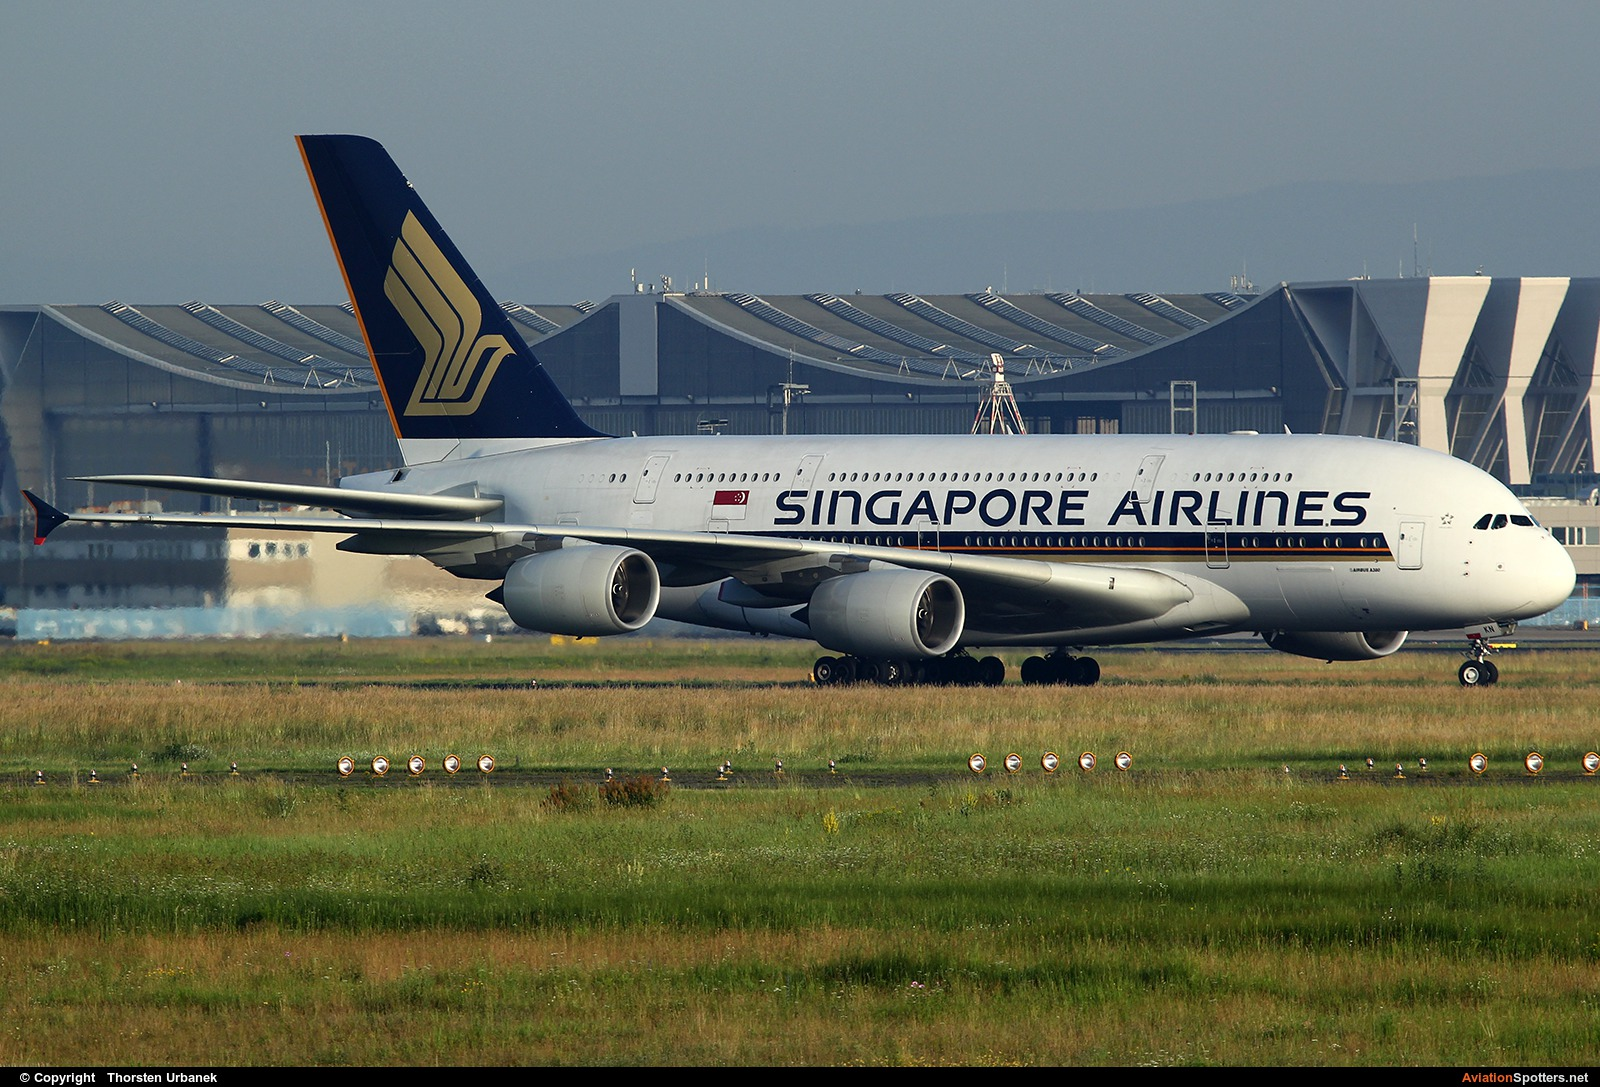 Singapore Airlines  -  A380  (9V-SKN) By Thorsten Urbanek (toto1973)